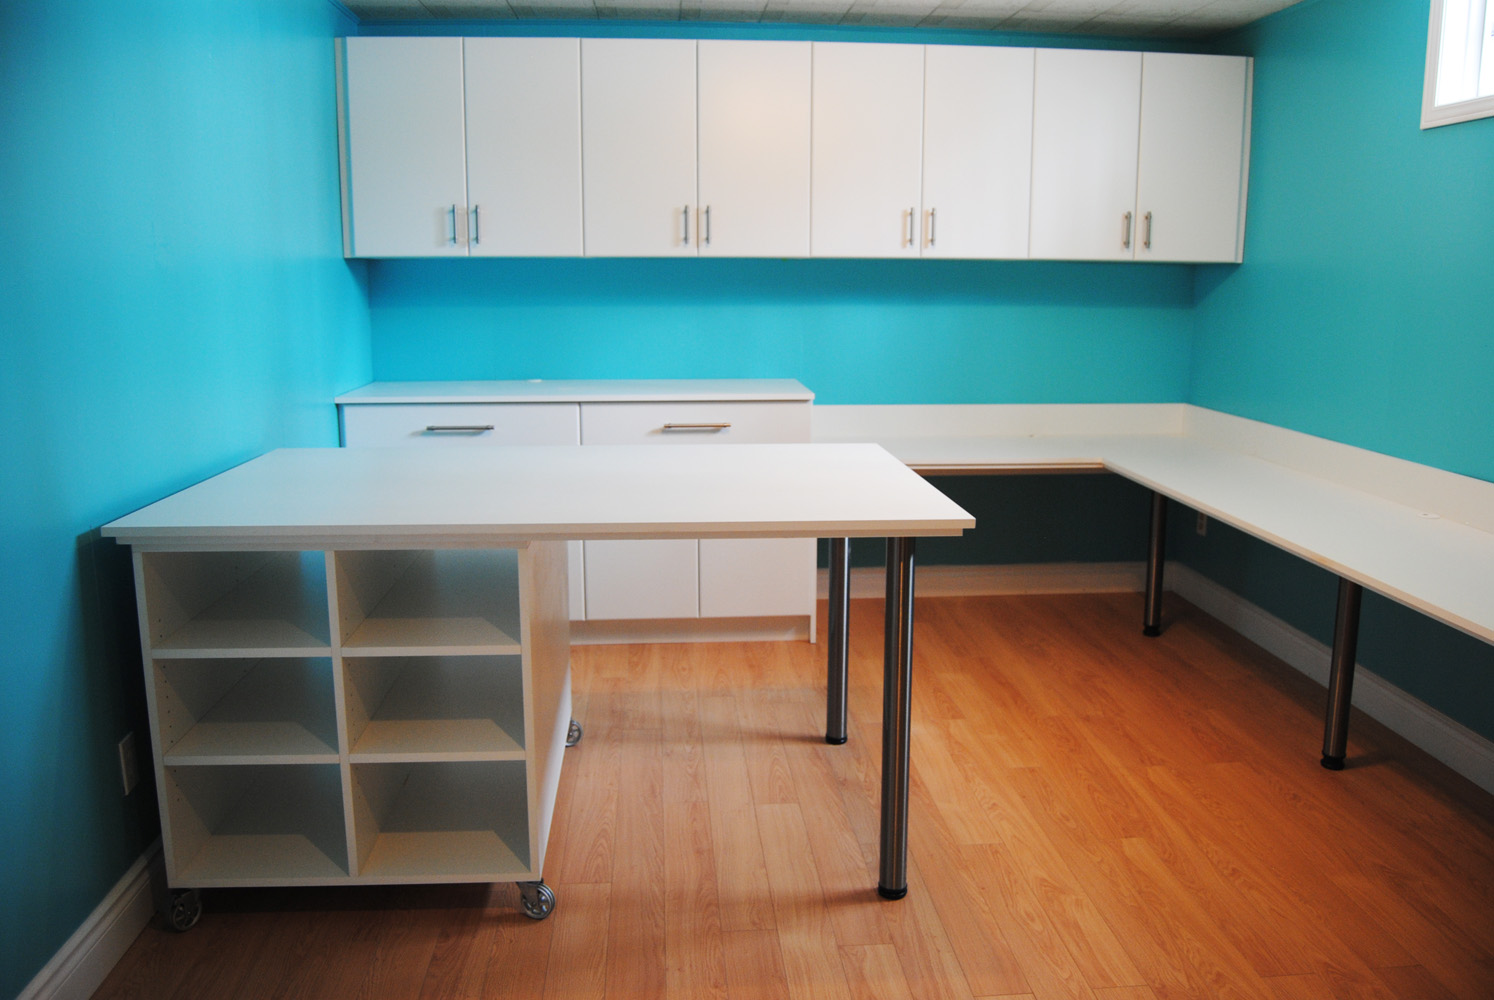 Hobby Room Cabinets Sewing room